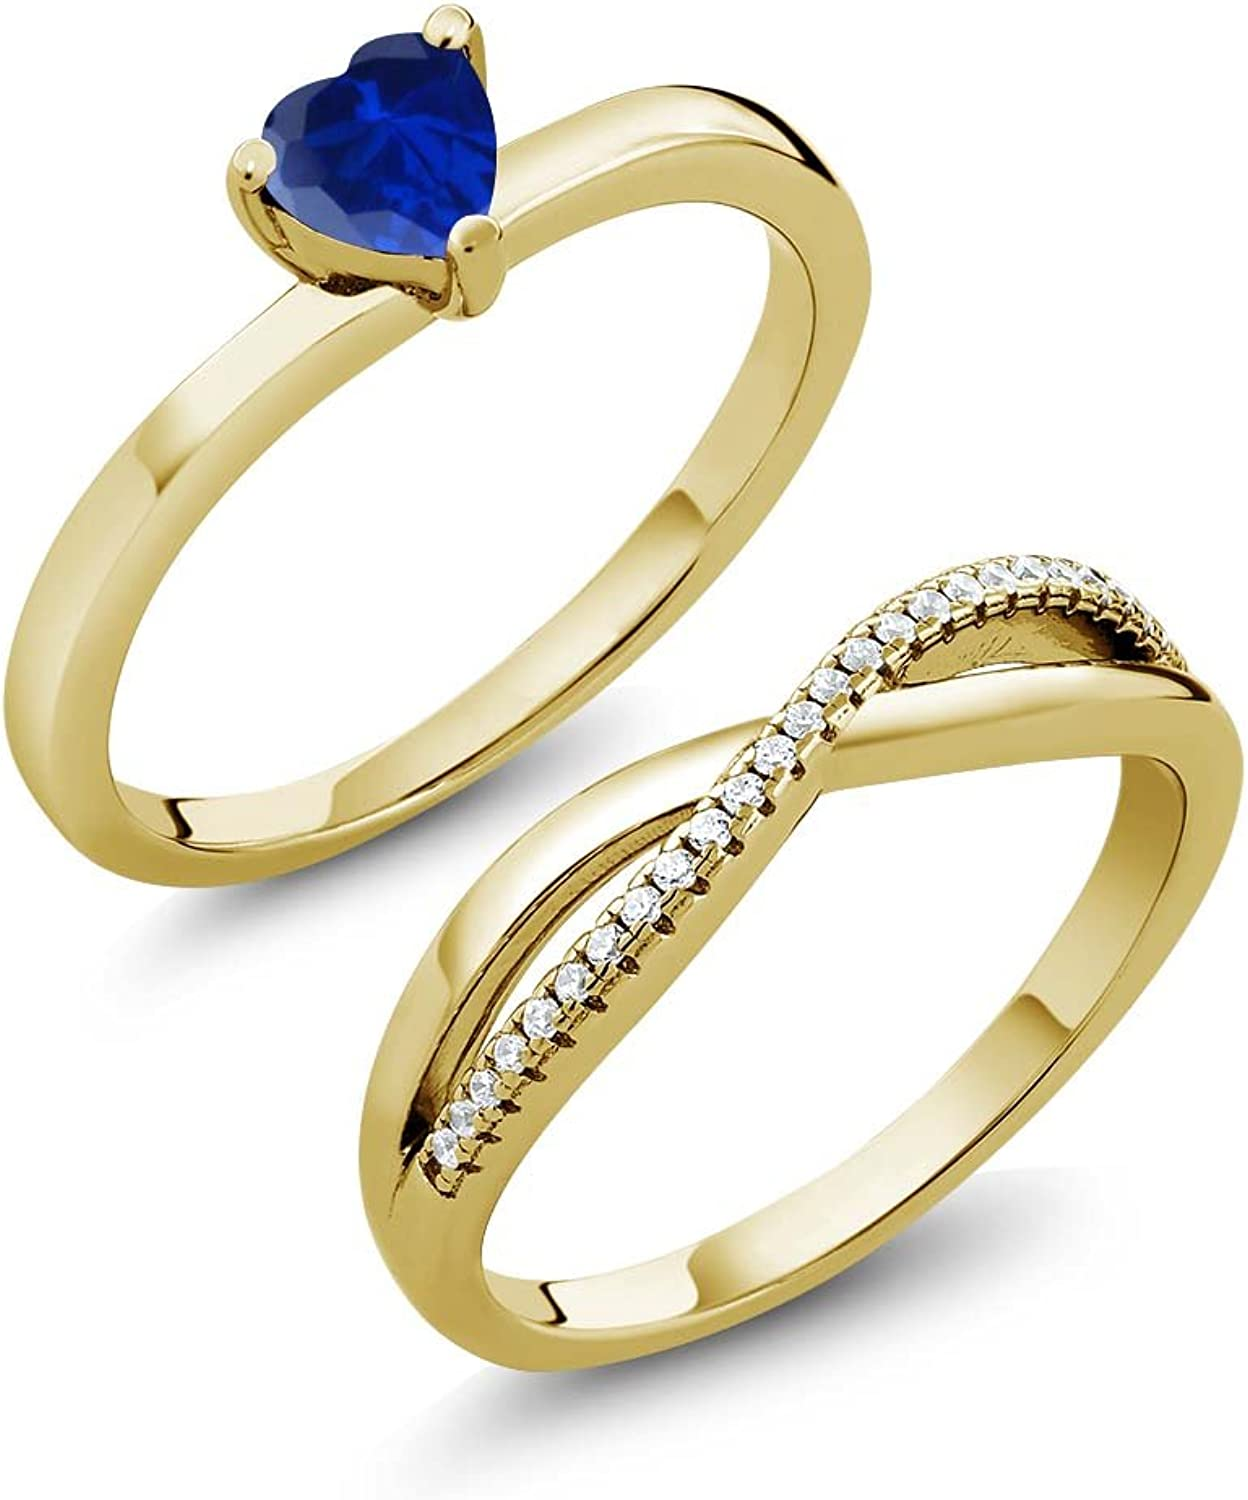 0.91 Ct Simulated Sapphire 18K Yellow gold Plated Silver Engagement Wedding Ring Set